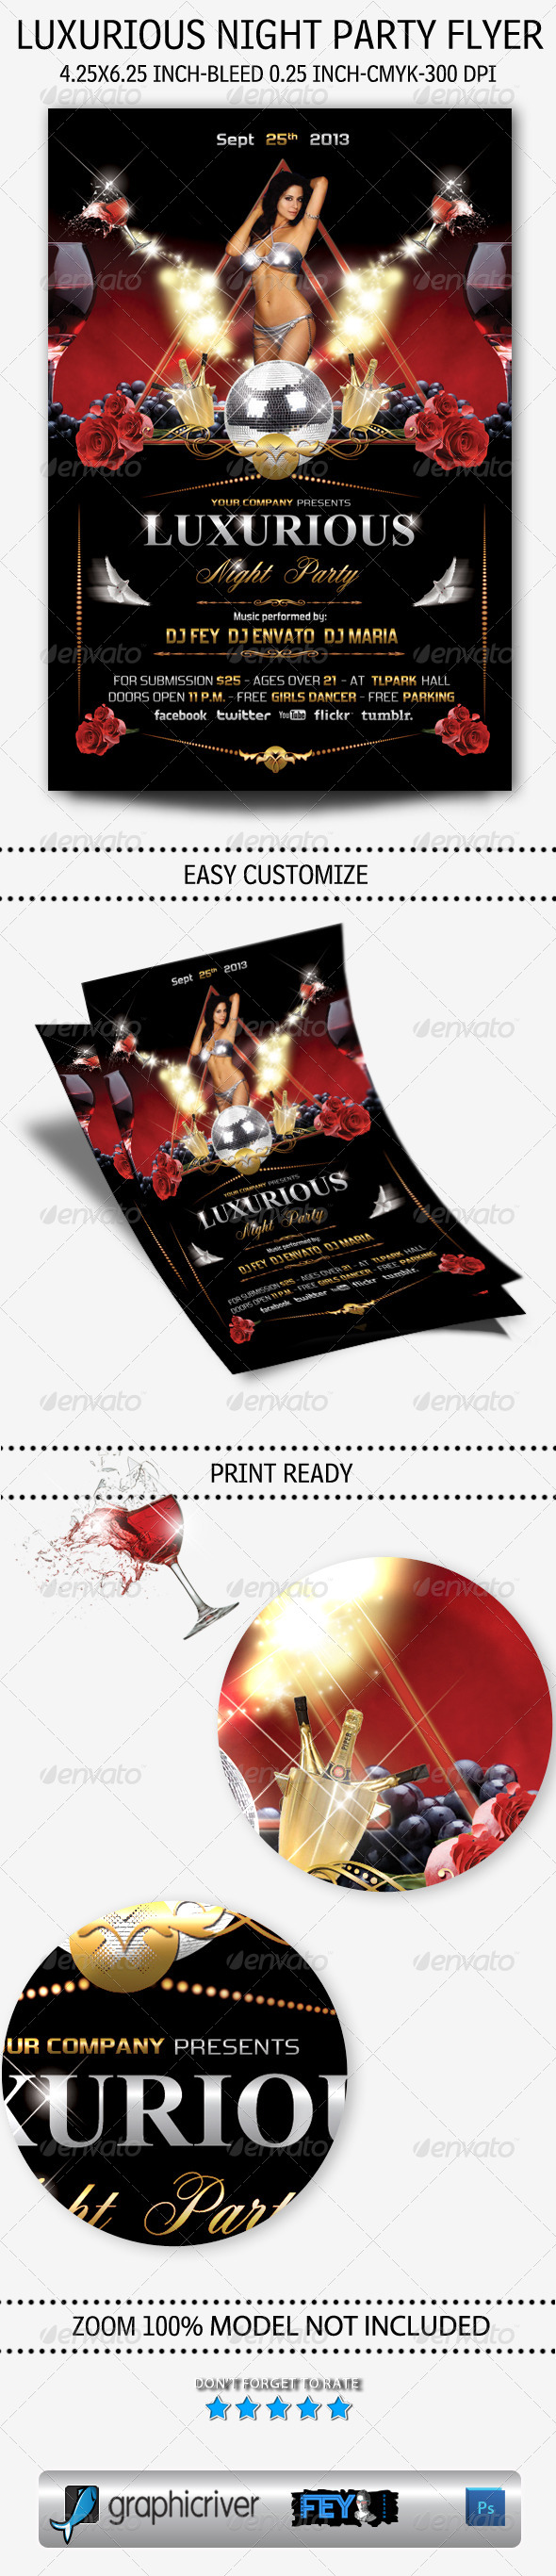 GraphicRiver Luxurious Night Party Flyer 5483436